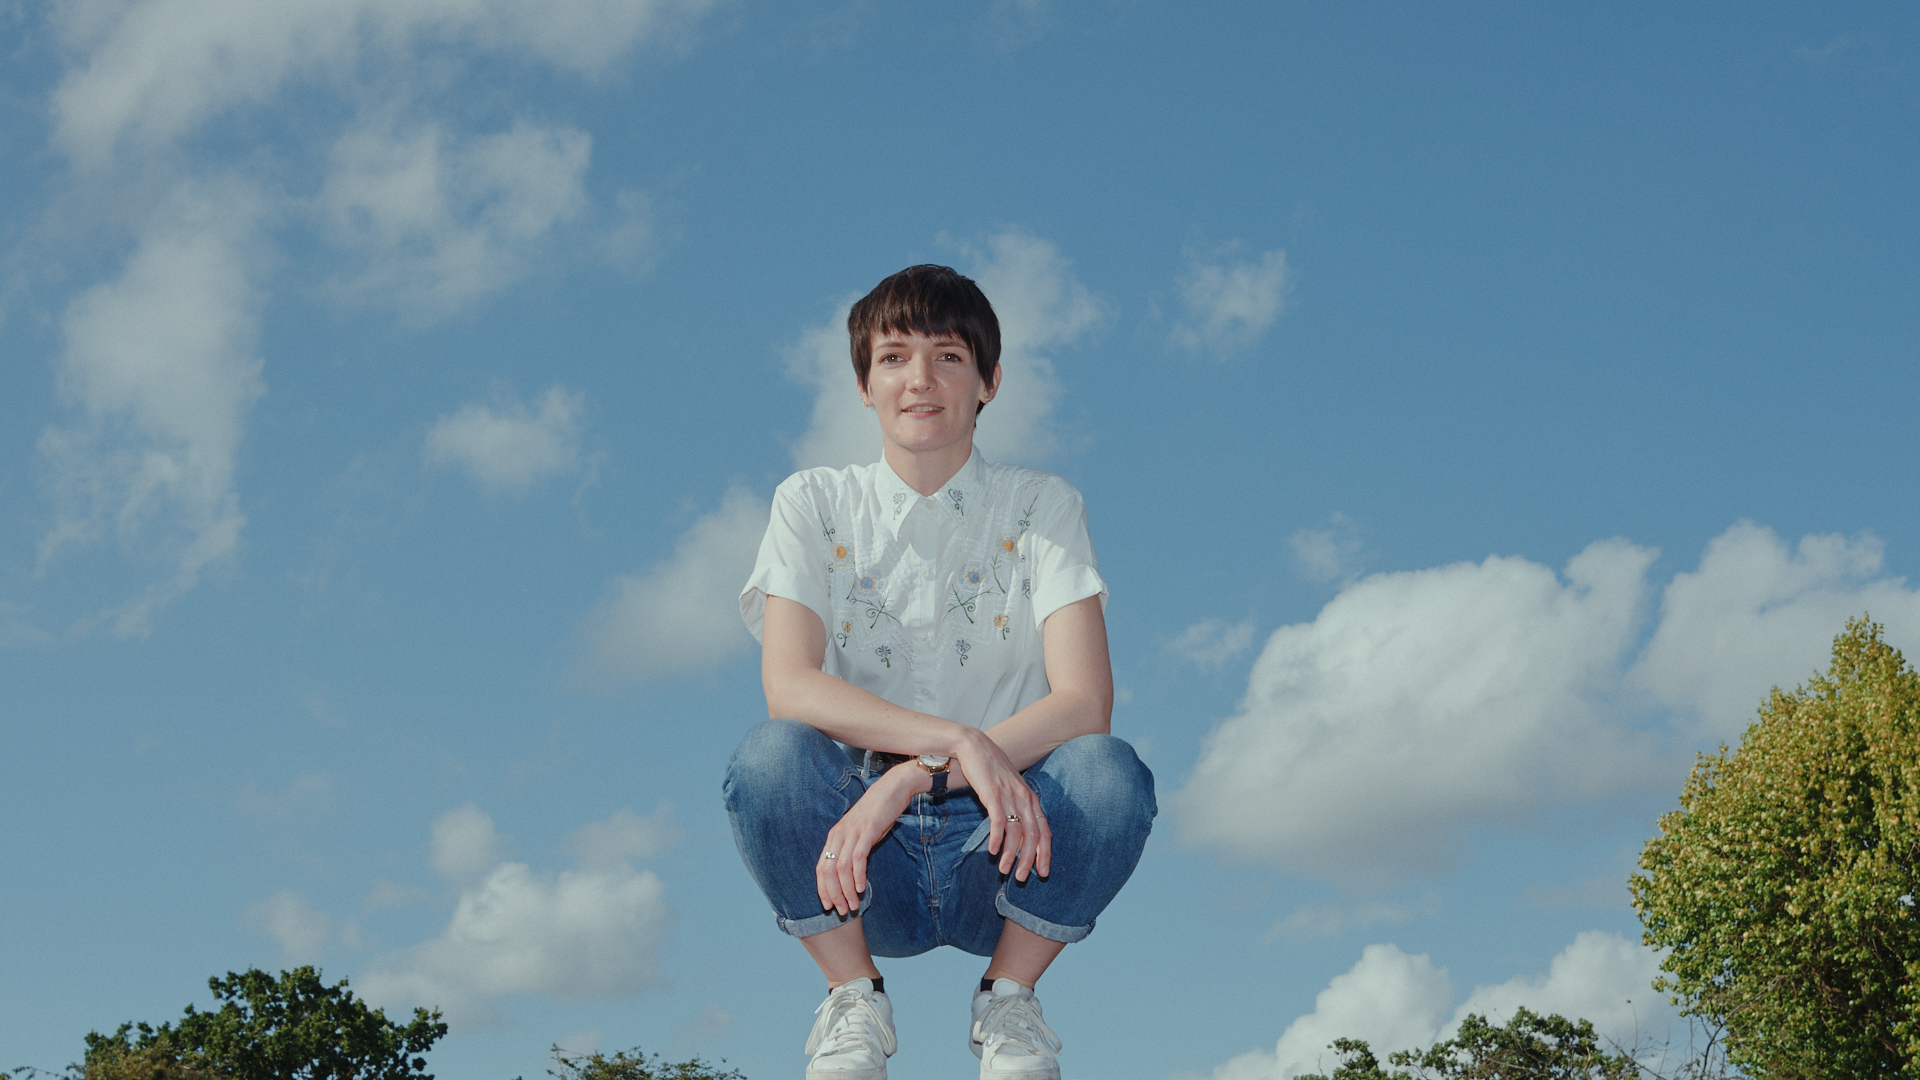 A woman with short hair, white shirt and blue jeans squats on a brick wall against a blue sky